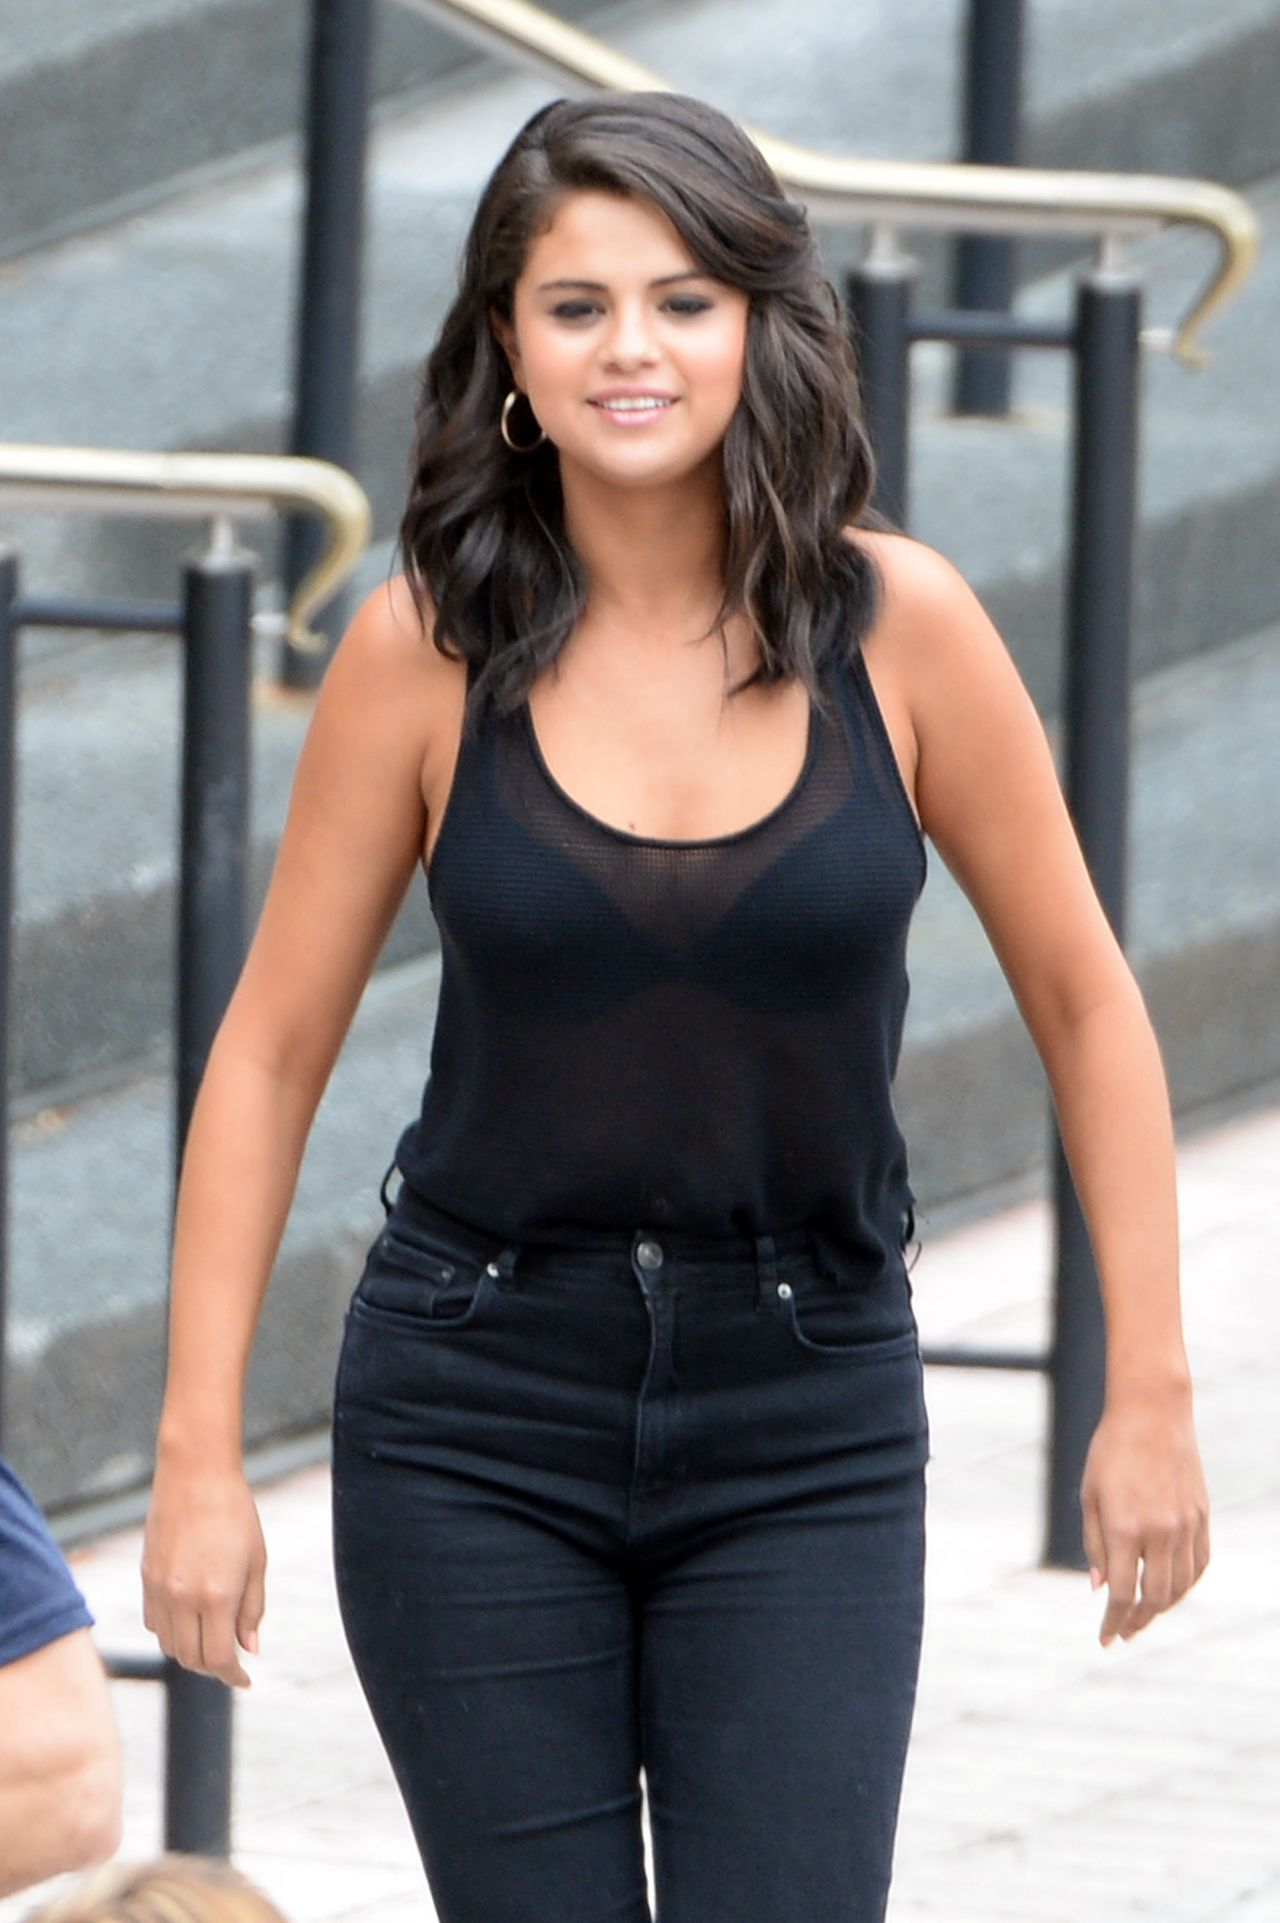 Selena Gomez - Leaving A Casino In New Orleans, Louisiana, May 2015-9906